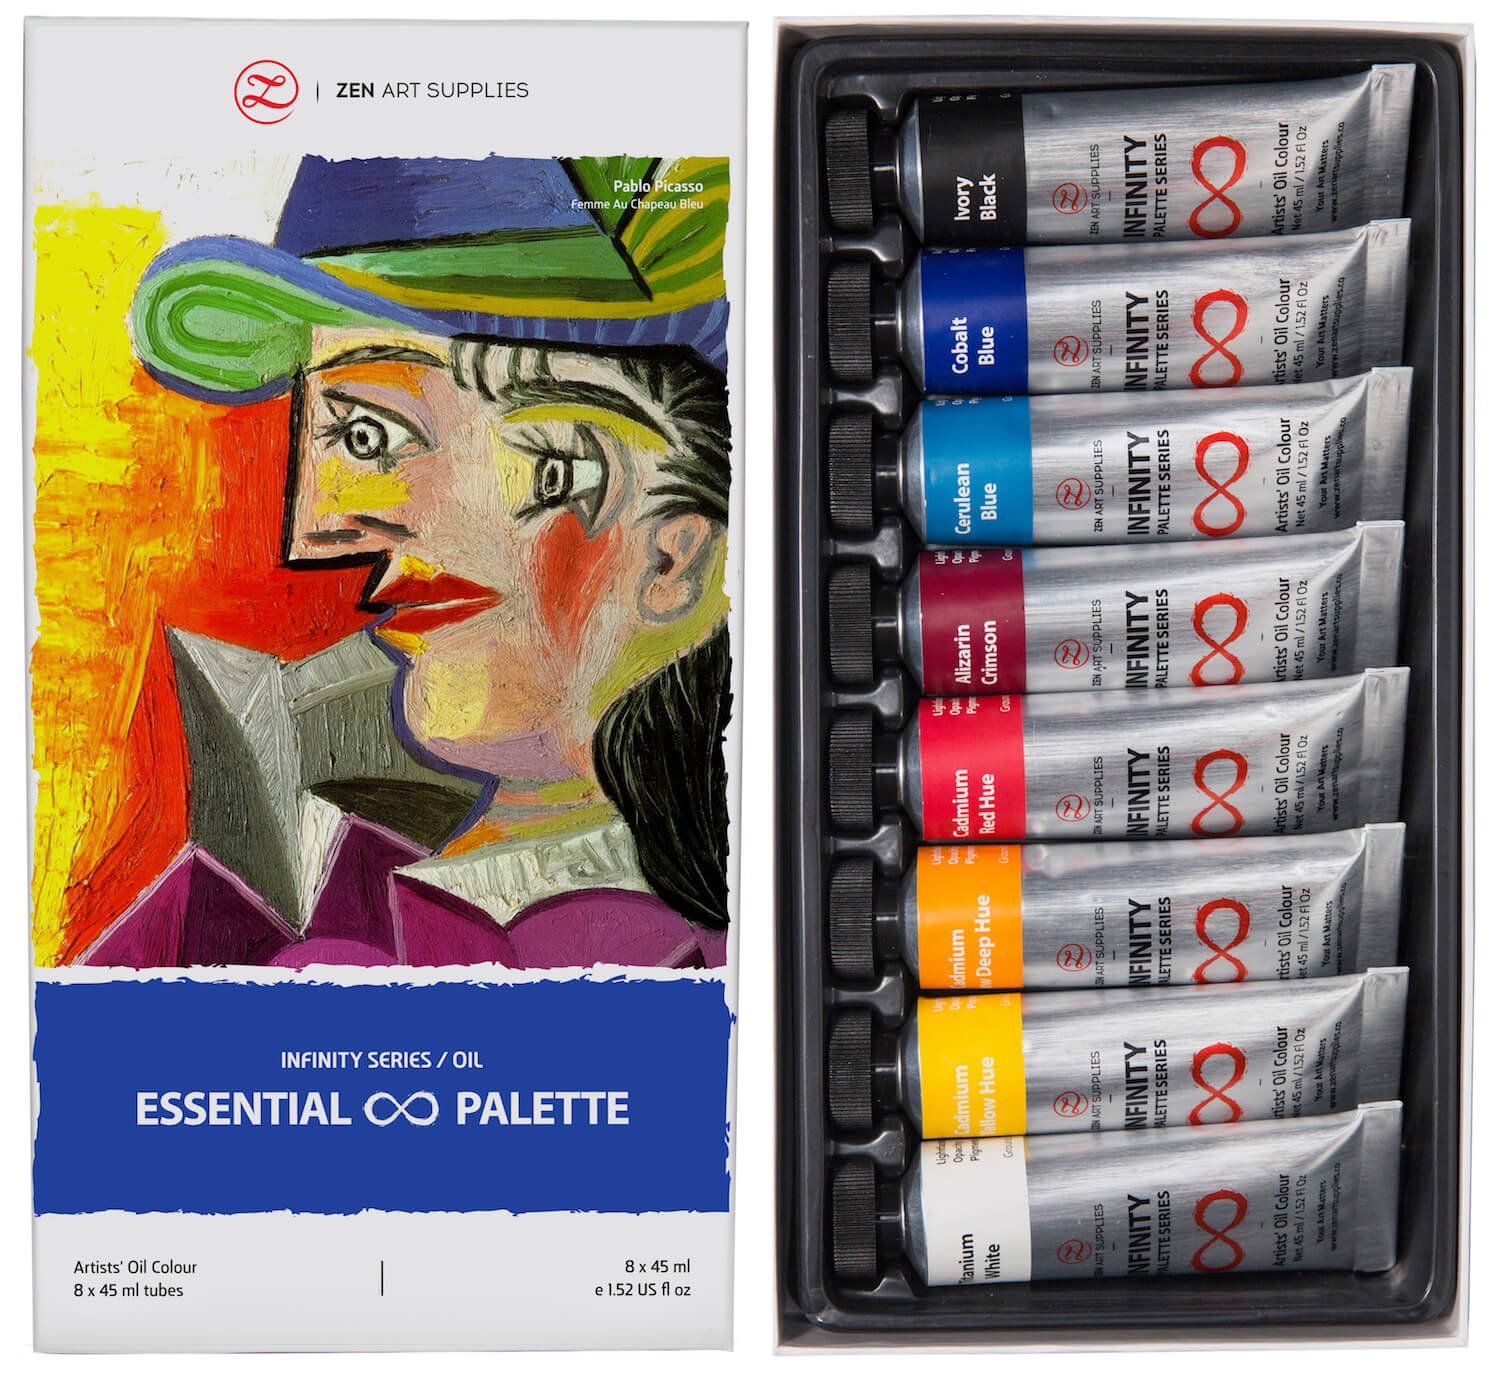 Professional Oil Paints Set - 8 x Large 45ml Tubes - Essential Palette for Artists, Eco-Friendly, Non-Toxic, and Lightfast Paint with Exceptional Pigment Load - The Infinity Series by ZenART by ZenART Supplies